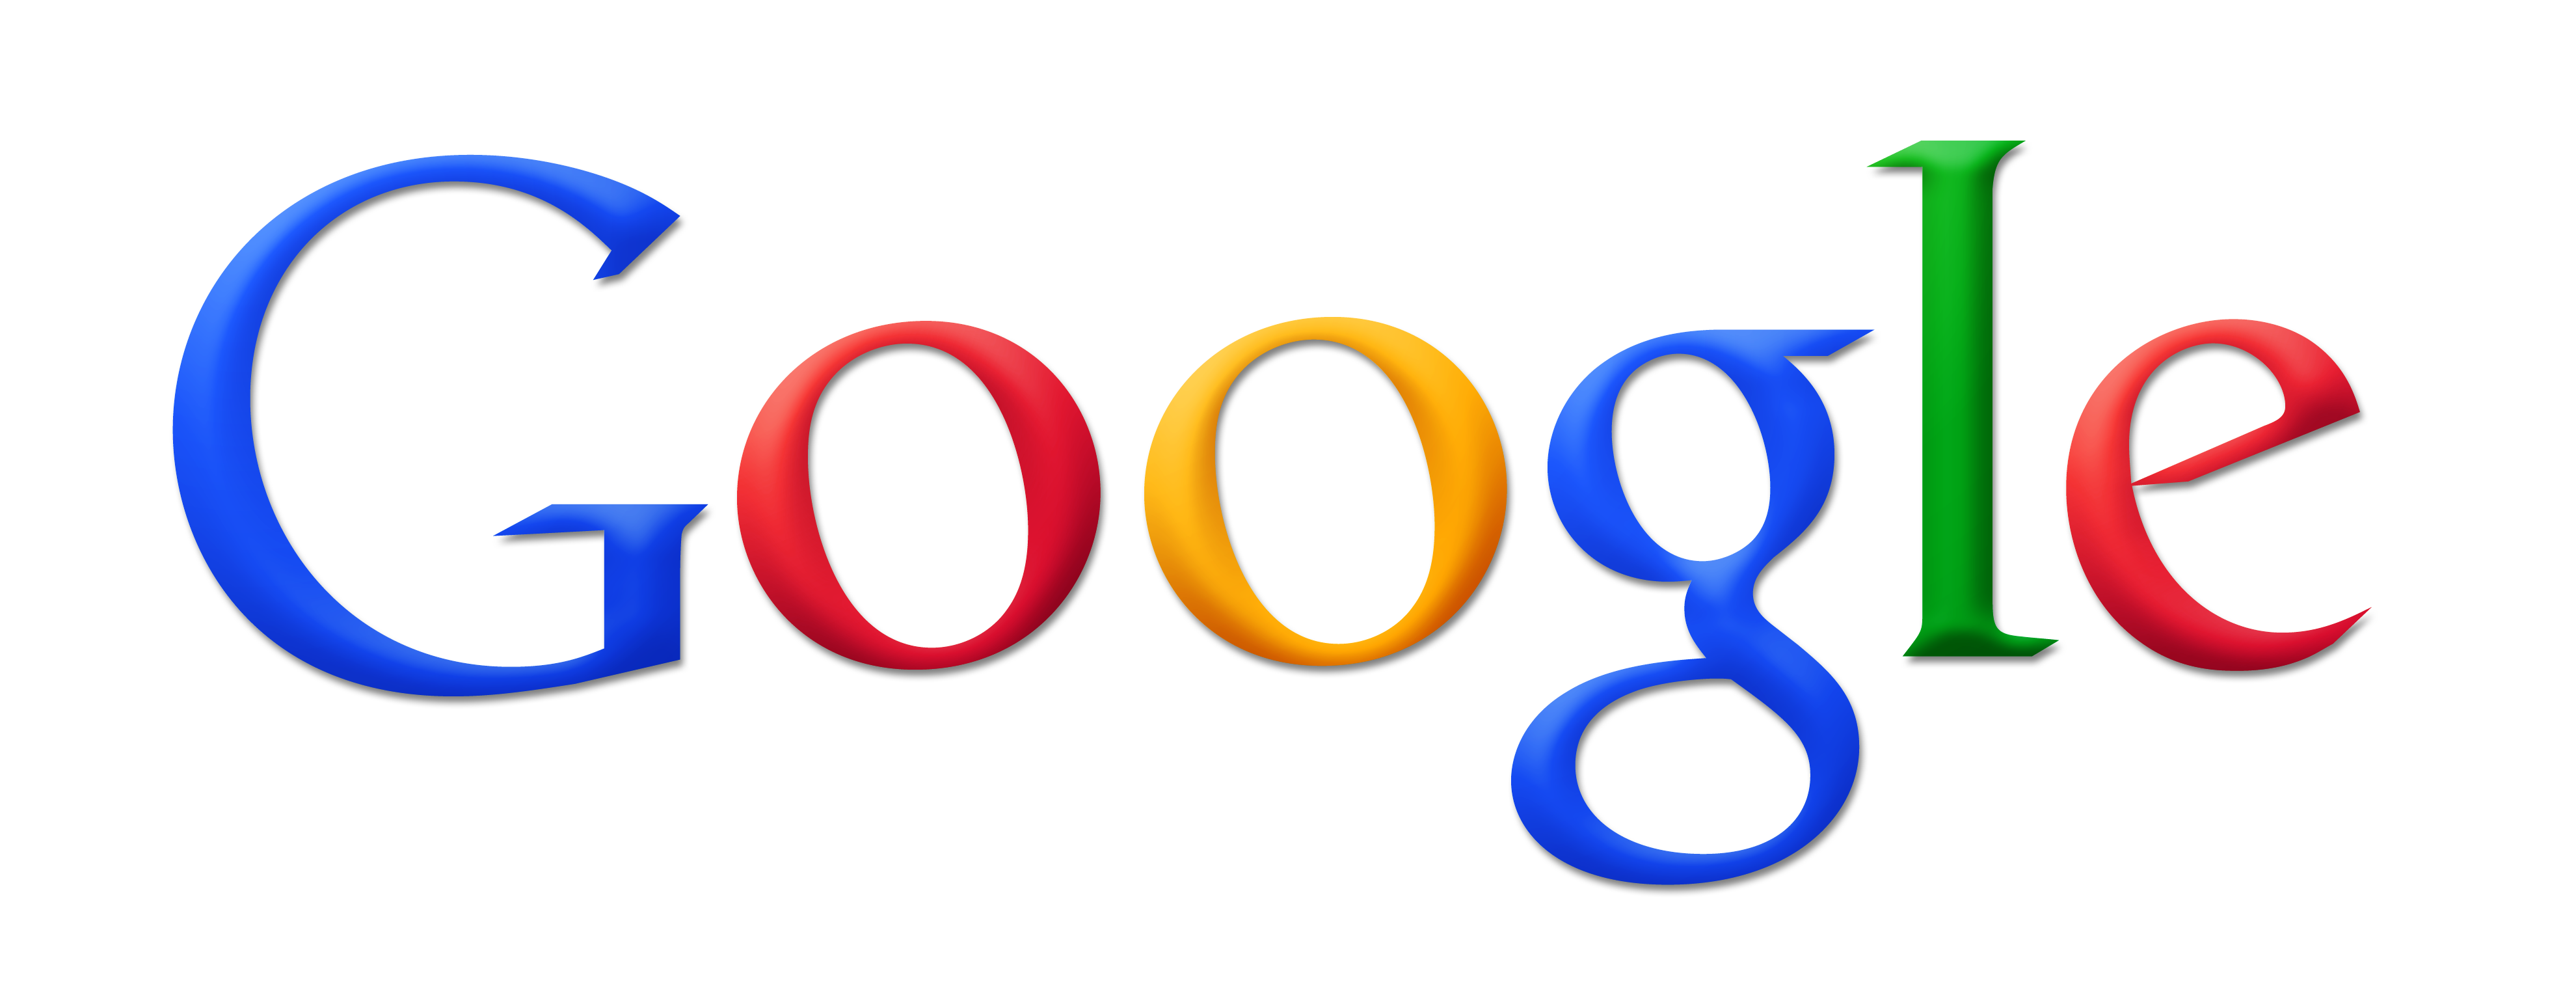 Dmca: What's It Like To Interview At Google?